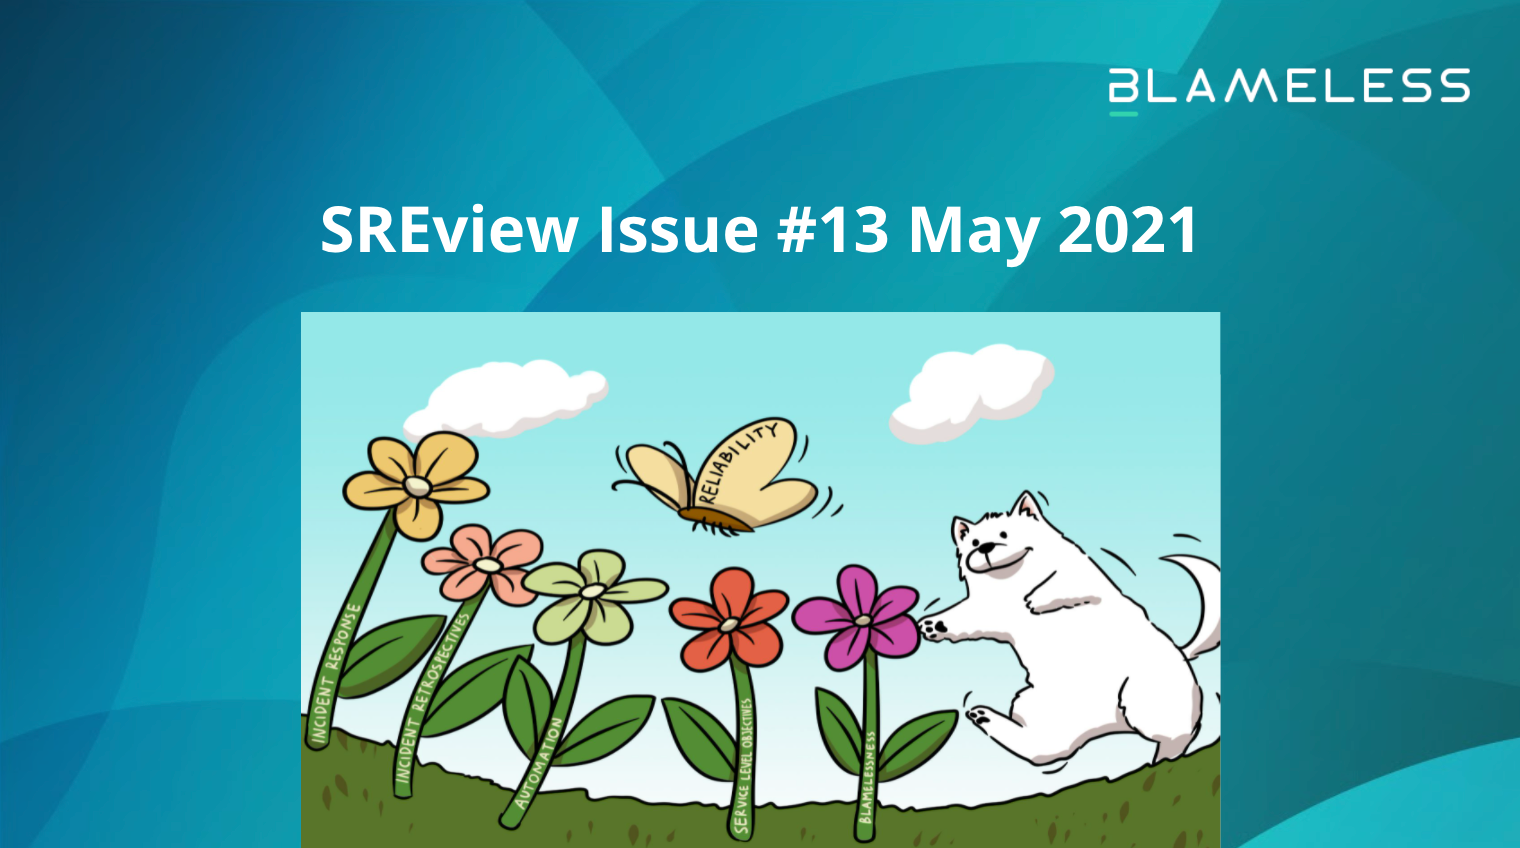 SREview Issue #13 May 2021